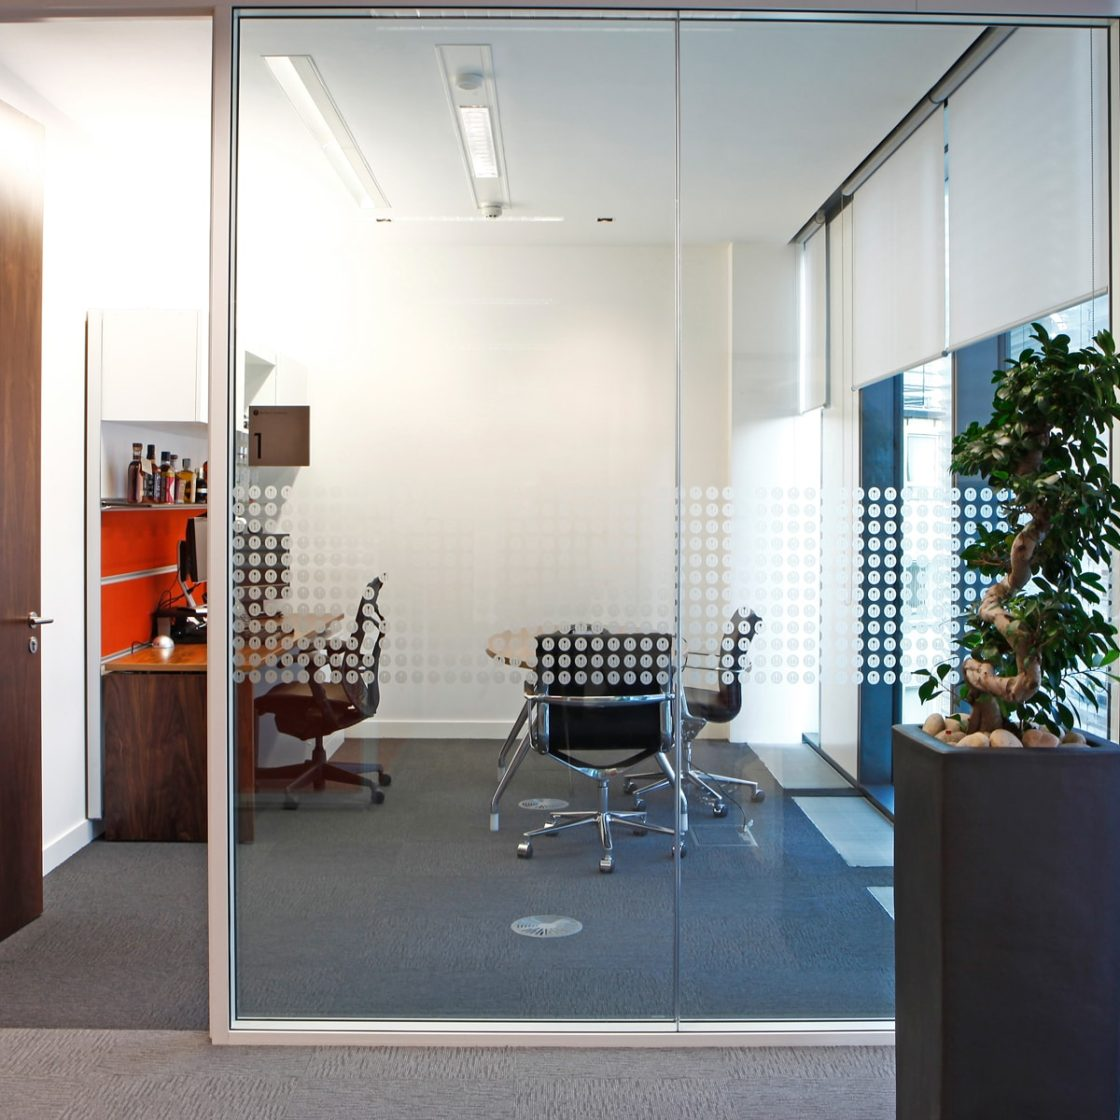 Working office | Workwall | Meeting room | Glass Partitions